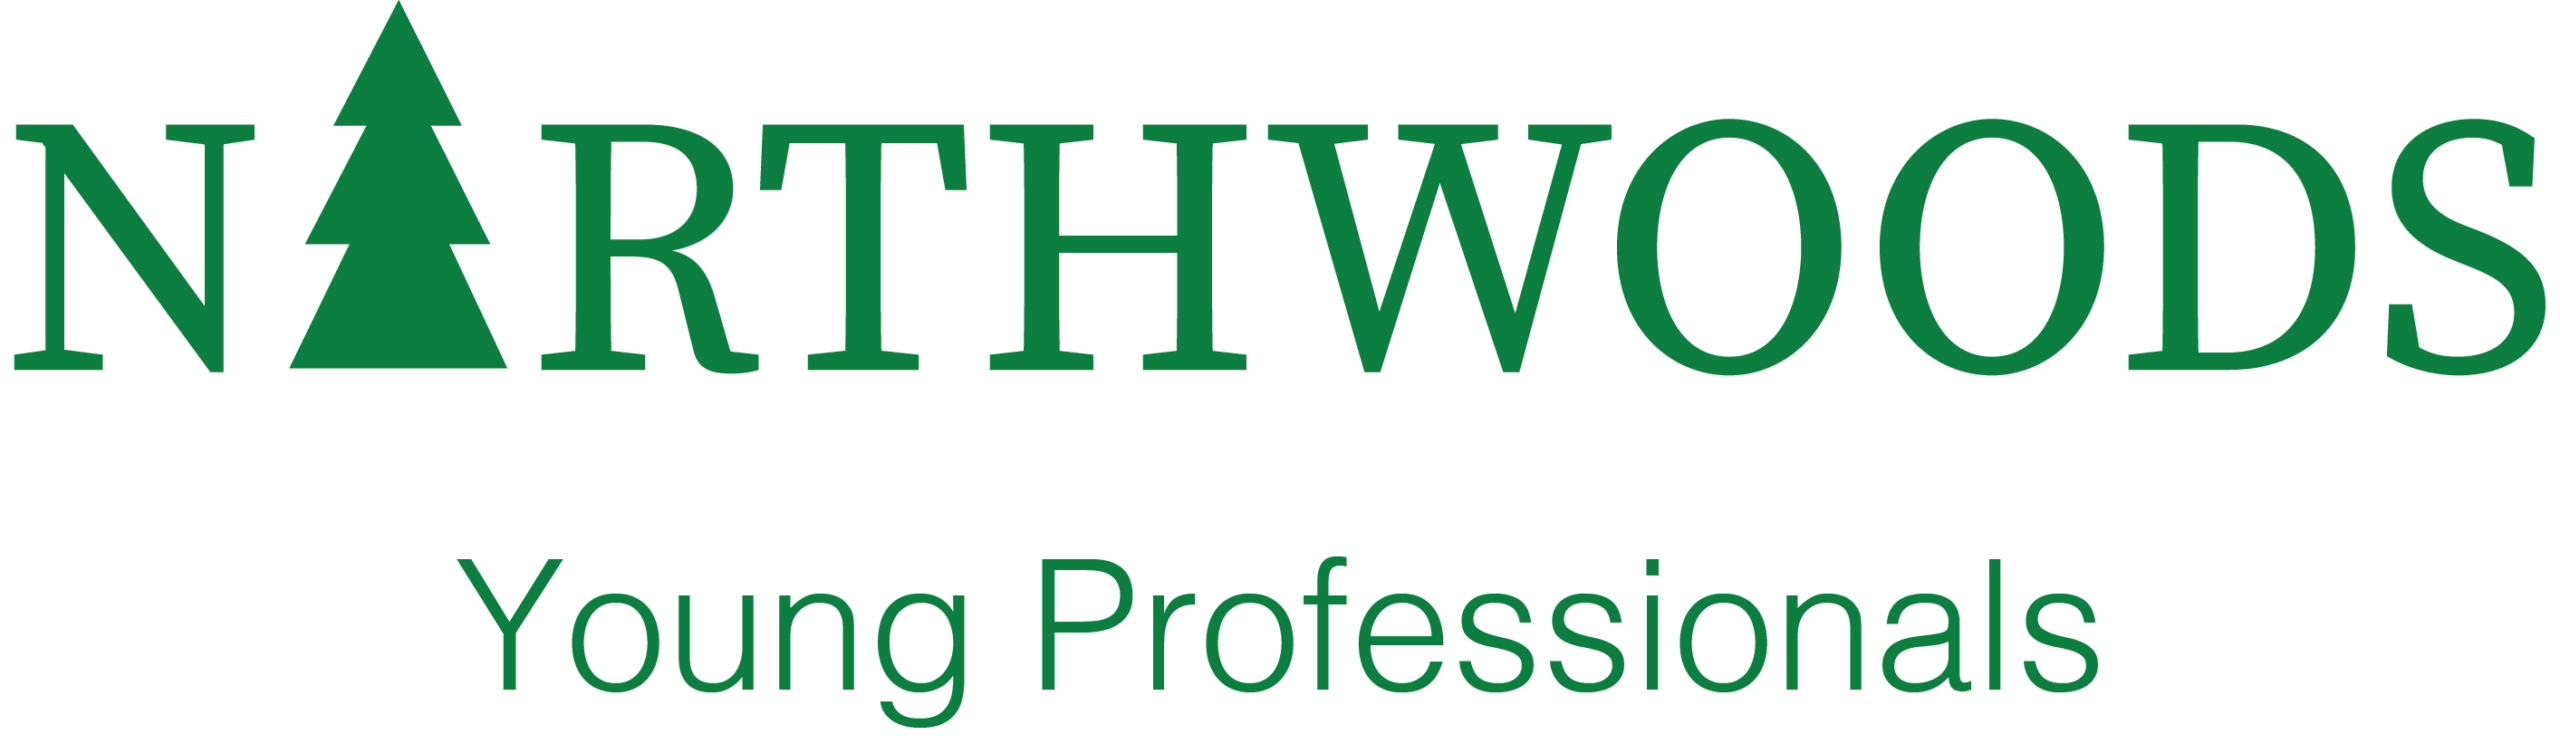 Northwoods young professionals logo